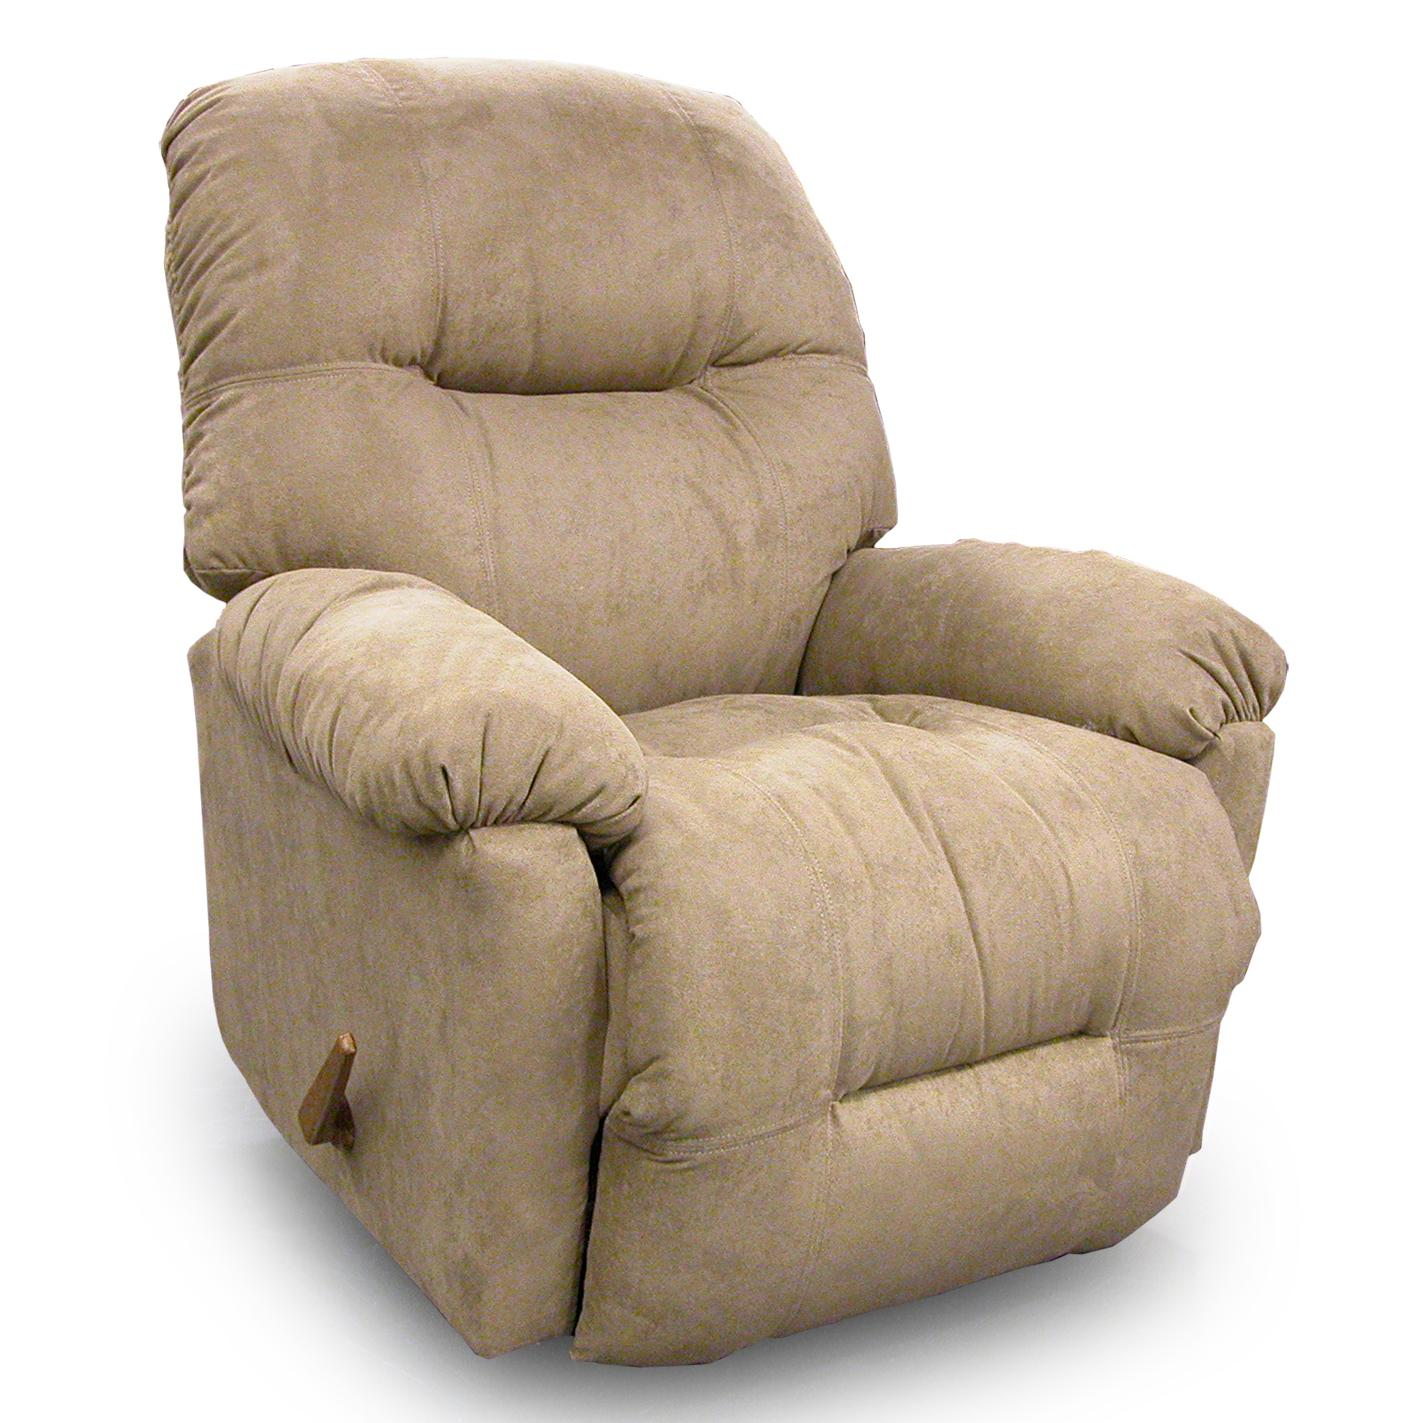 Image of: Best Rocking Recliner Chair